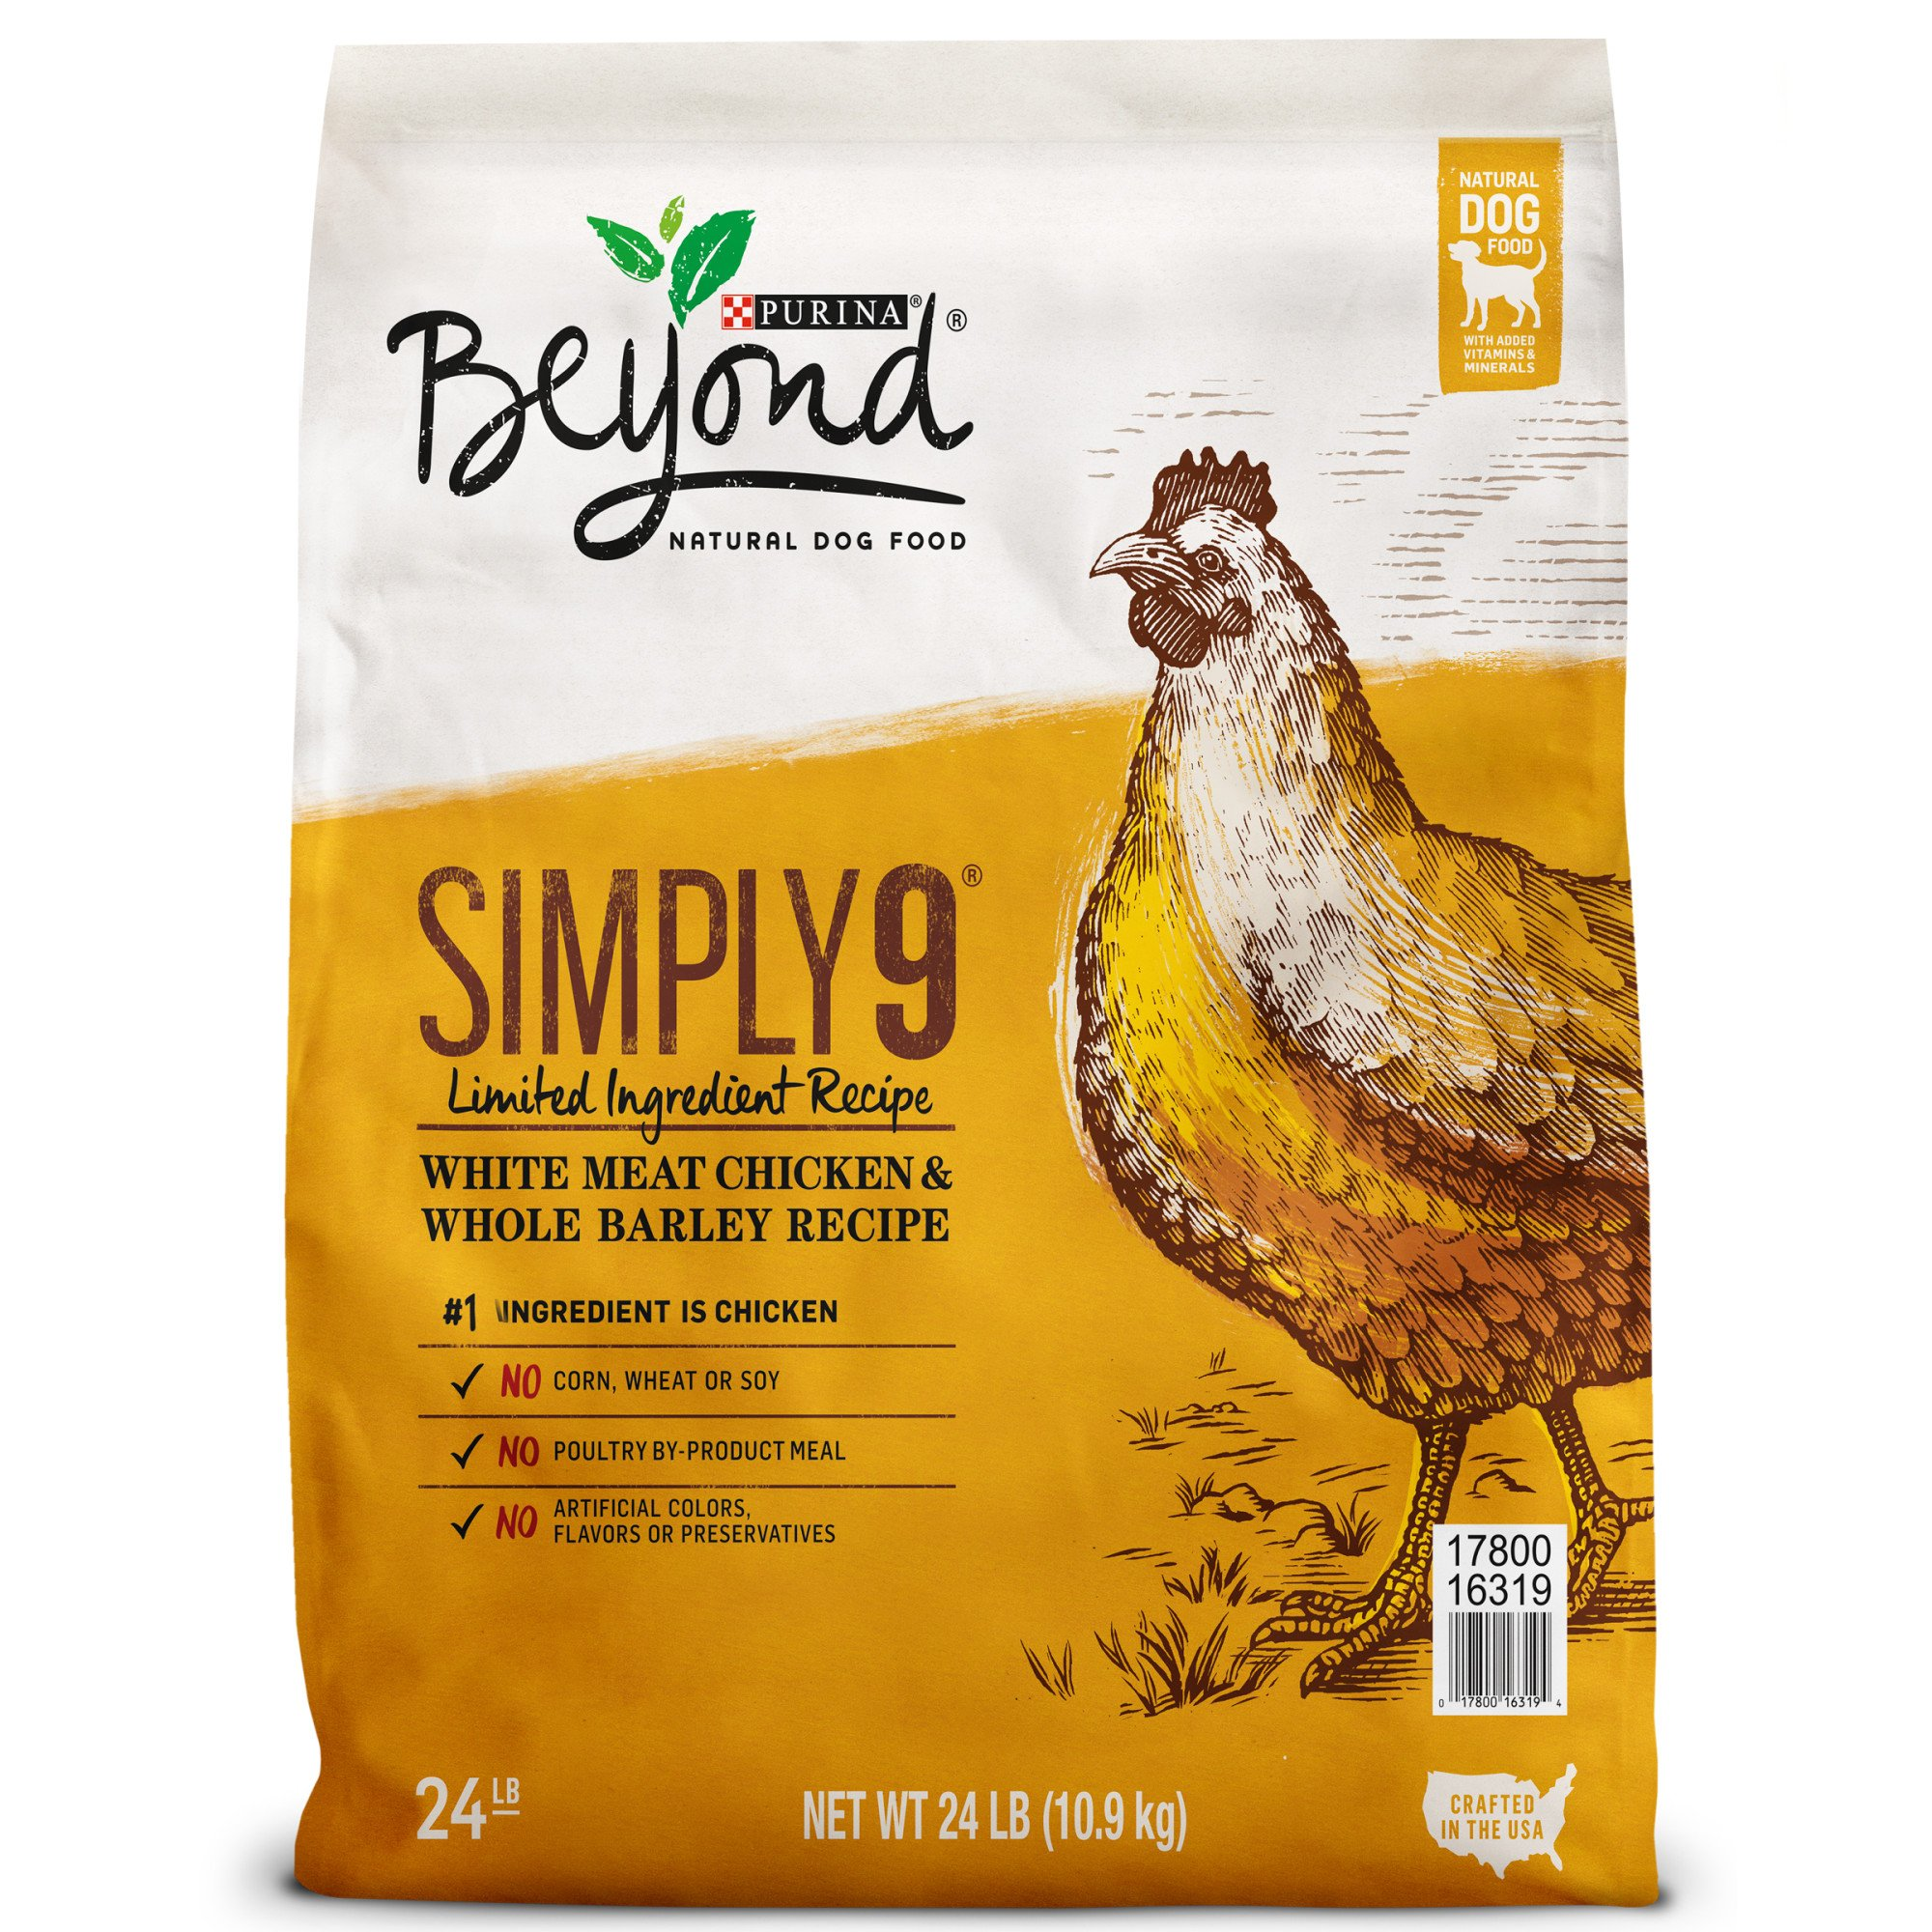 Purina Beyond Cat Food >> Purina Beyond Simply 9 White Meat Chicken & Whole Barley Recipe Dog Food | Petco